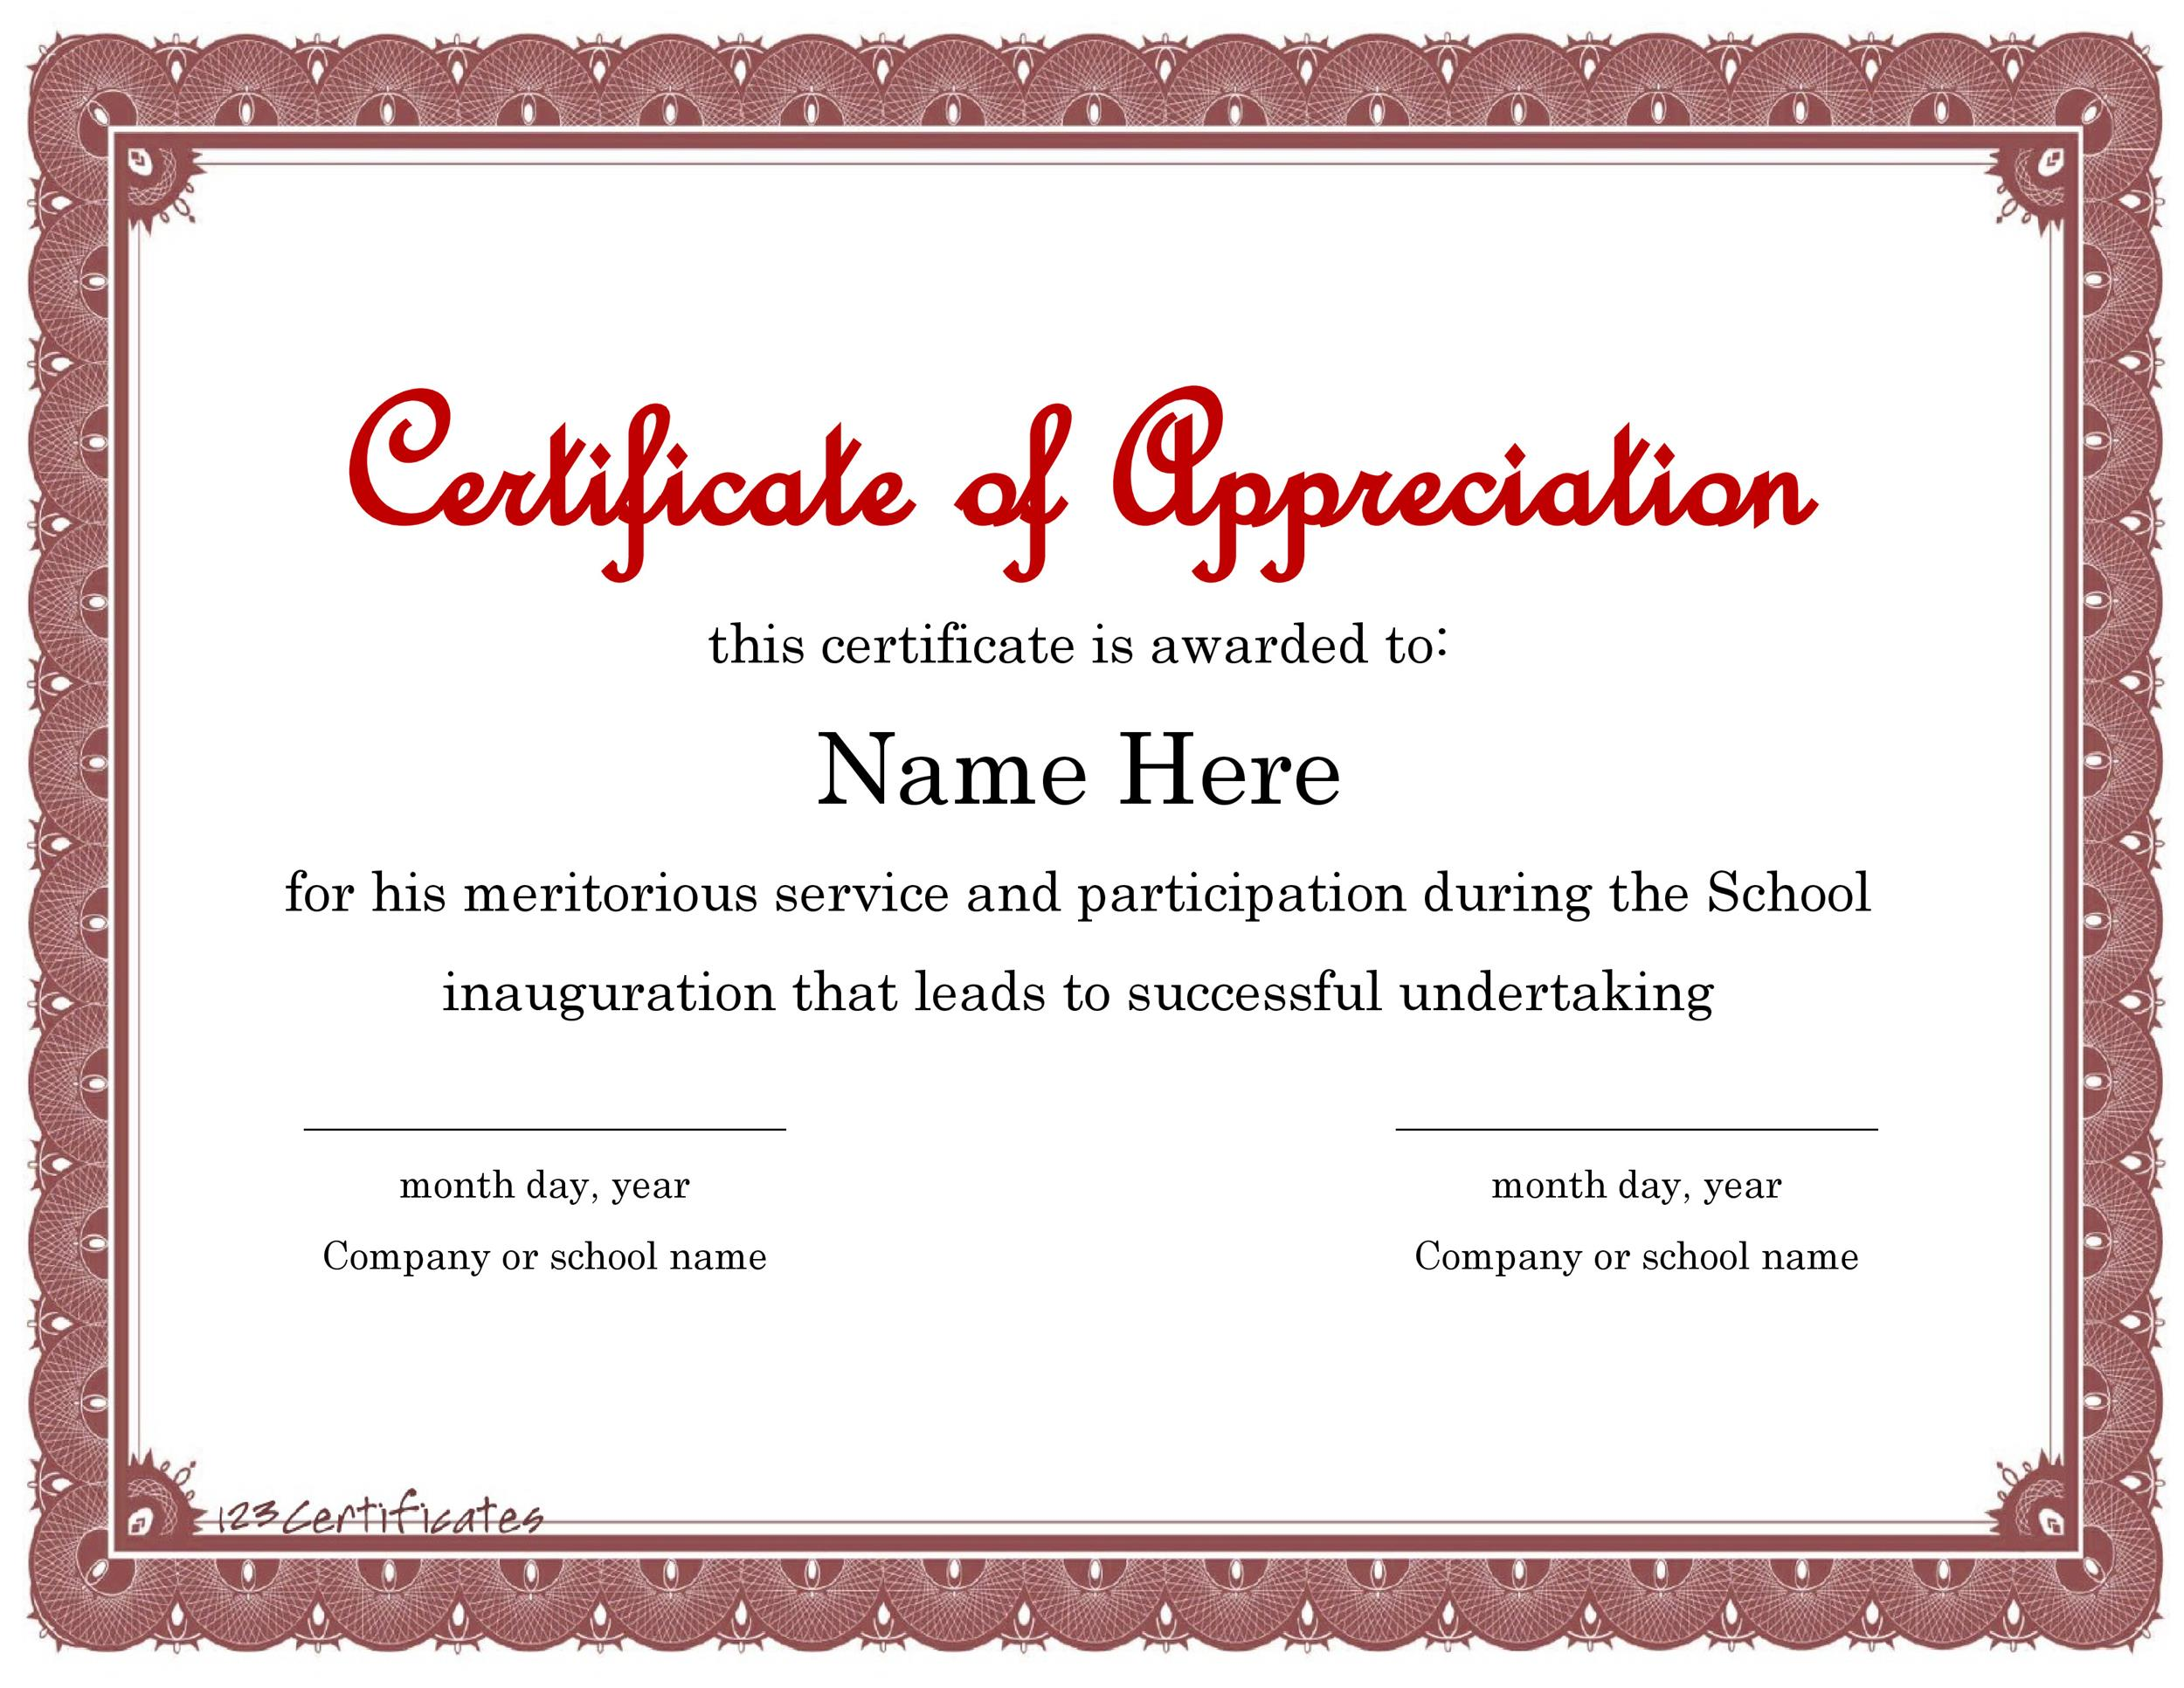 30 Free Certificate of Appreciation Templates and Letters – Certificates of Recognition Templates